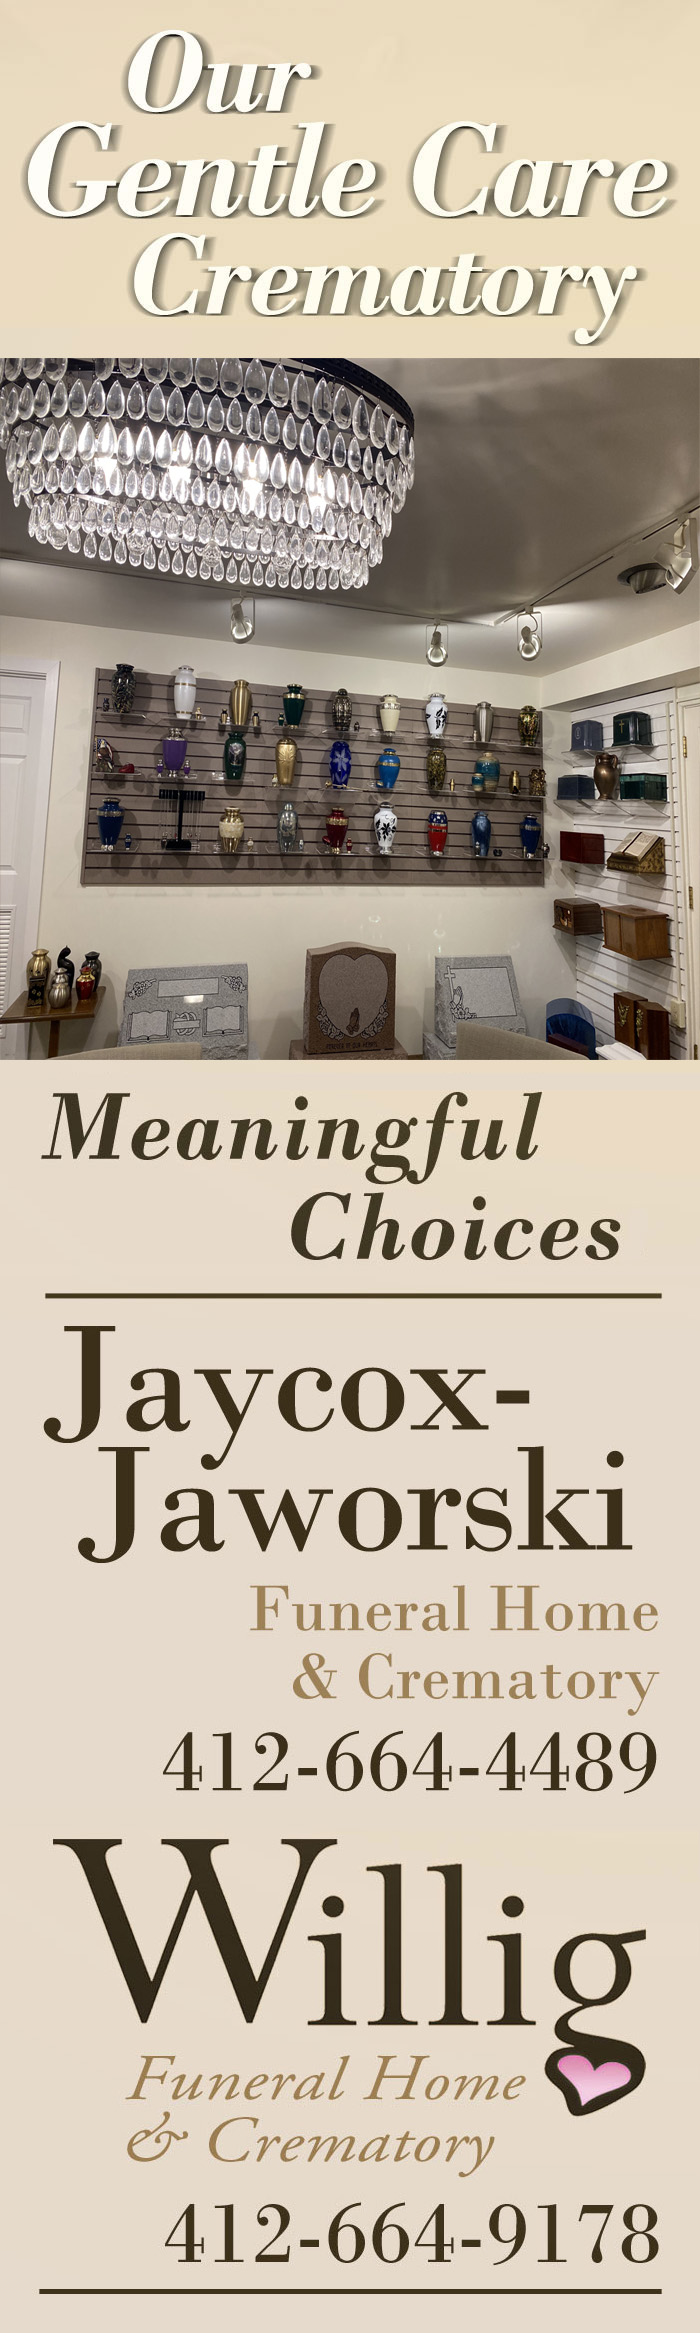 Jaycox-Jaworski and Willig Funeral Homes